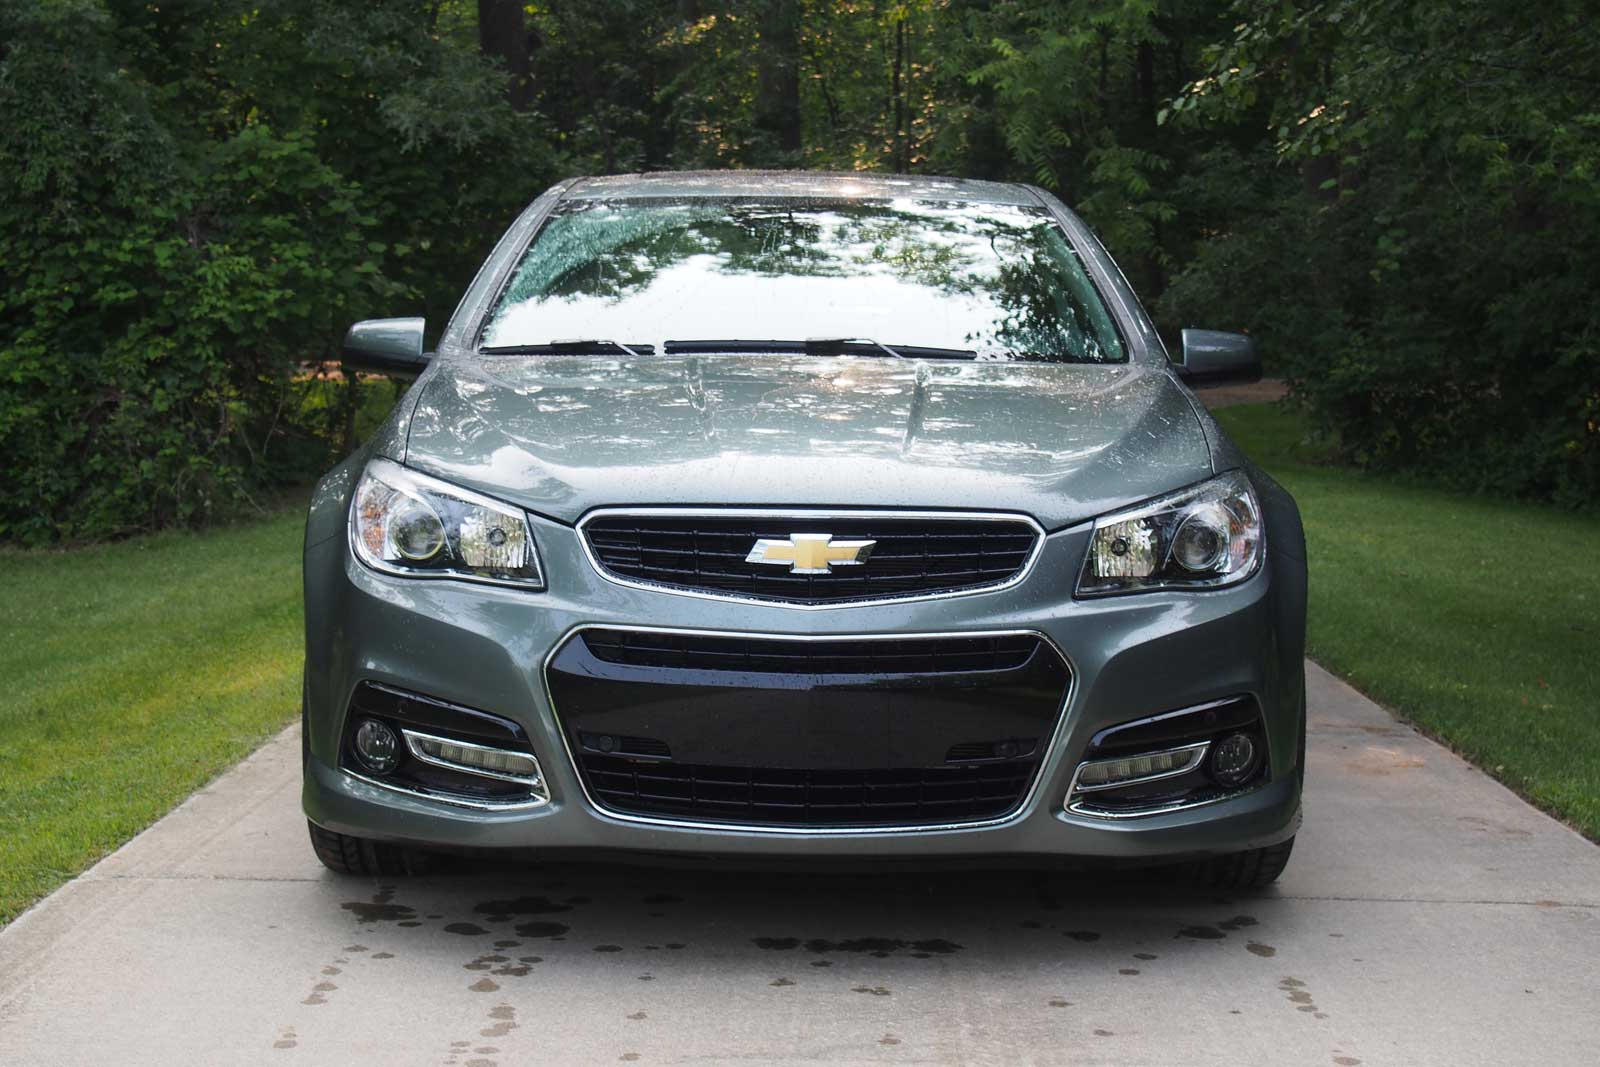 2015 chevrolet ss review autoguide 2015 chevrolet ss front 01 publicscrutiny Gallery